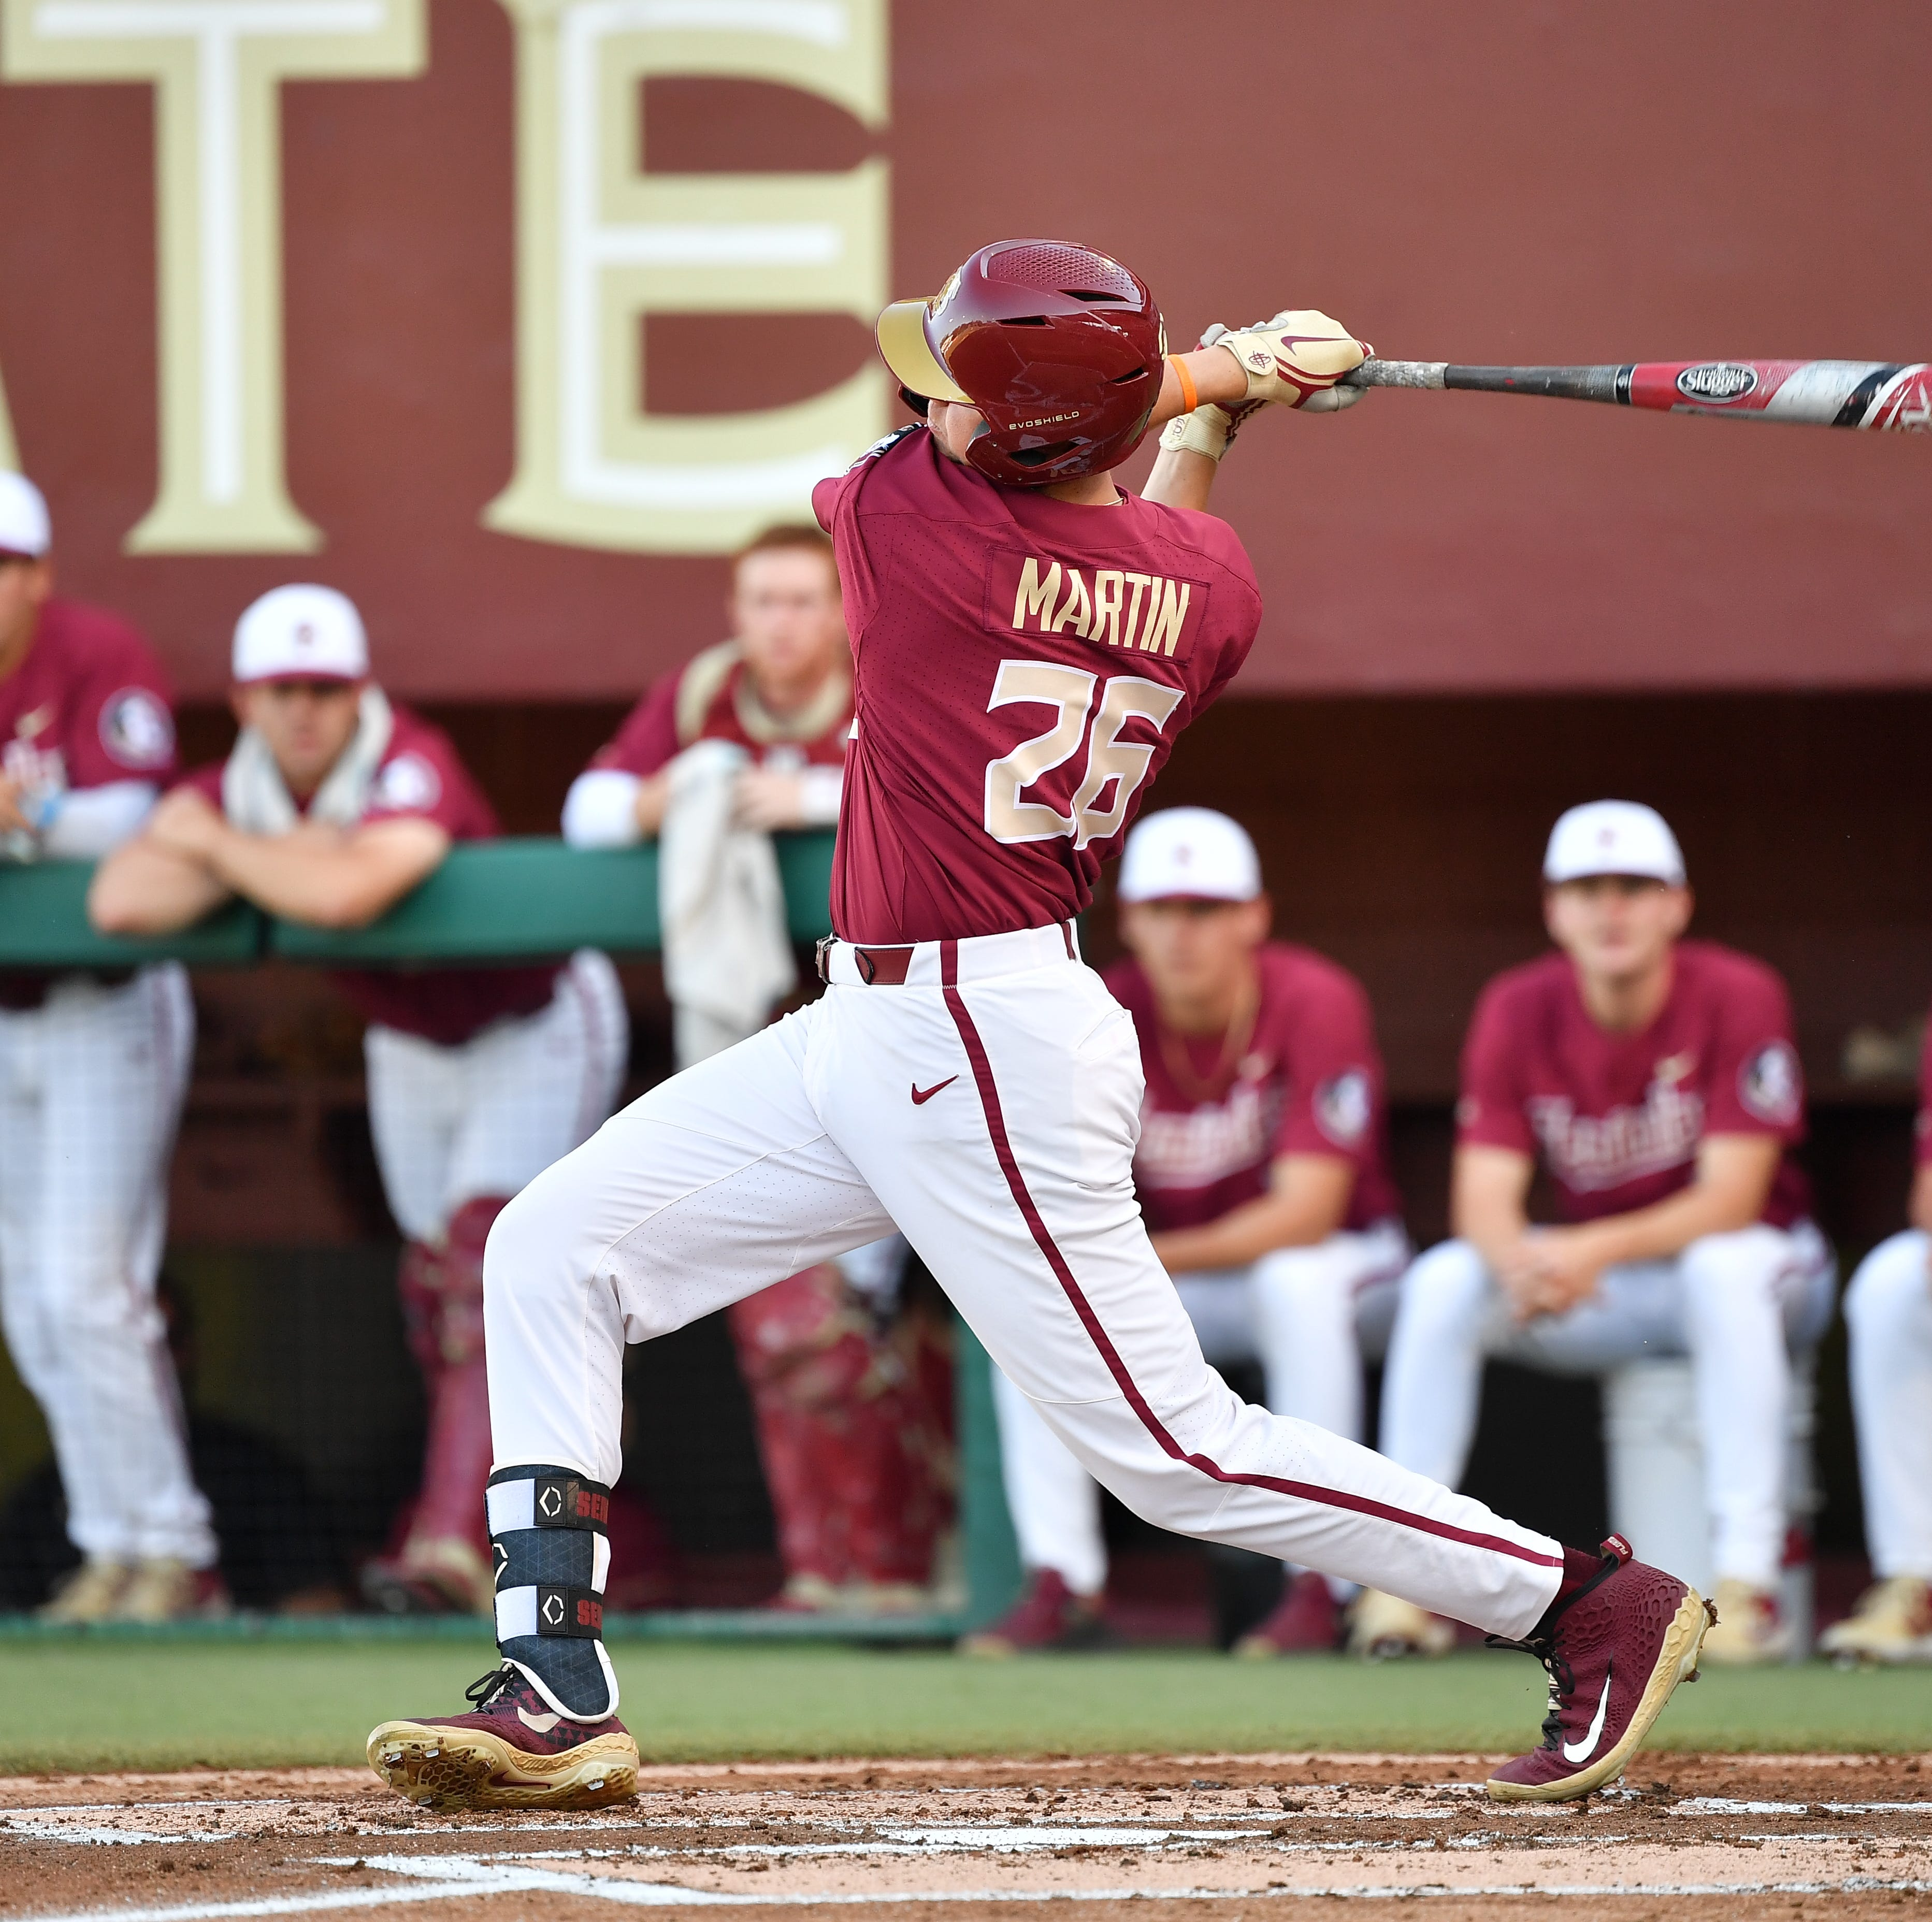 Drew Parrish deals, Florida State baseball routs Wake in series opener